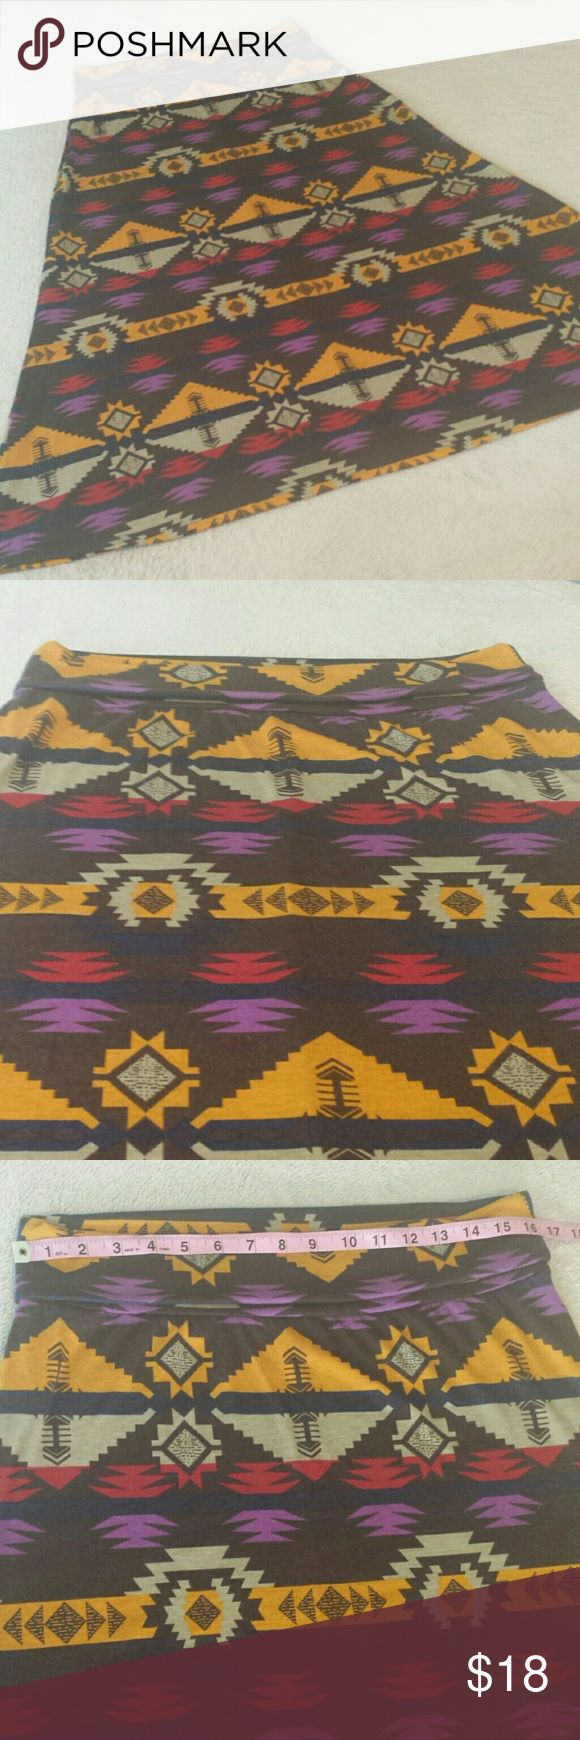 NWT. Caren Sport Aztec Print Skirt. Size 1X New with tag skirt by Carenc Sport. Comfortable and pretty with an Aztec print. 92% Polyester, 8% Spandex. See pics for approx measurements. No flaws. Size 1X. Caren Sport Skirts